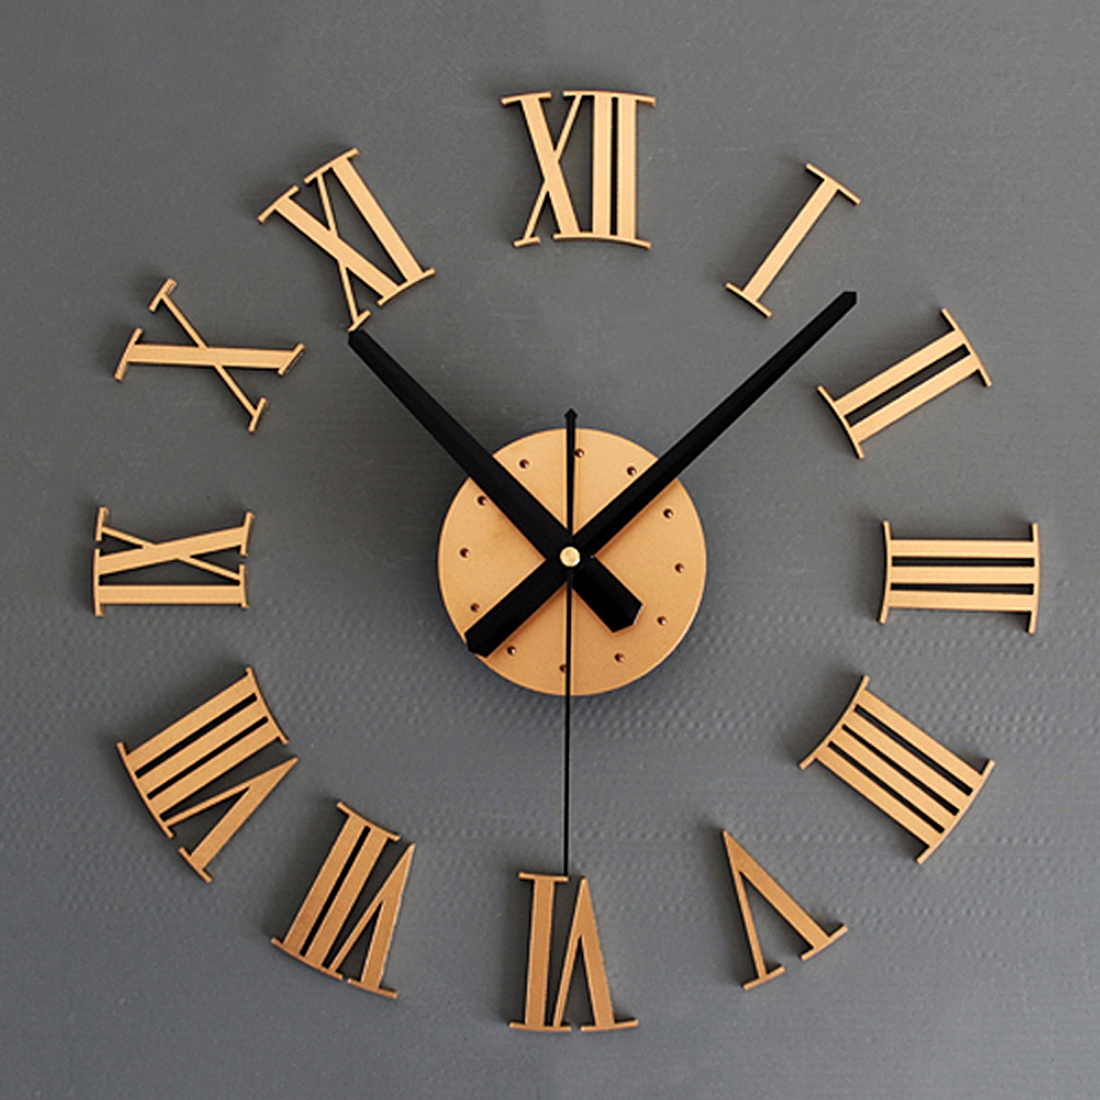 Practical DIY Luxury 3D Roman Numerals Wall Clock Large Size Home Decoration Art Clock HOT (color:gold)